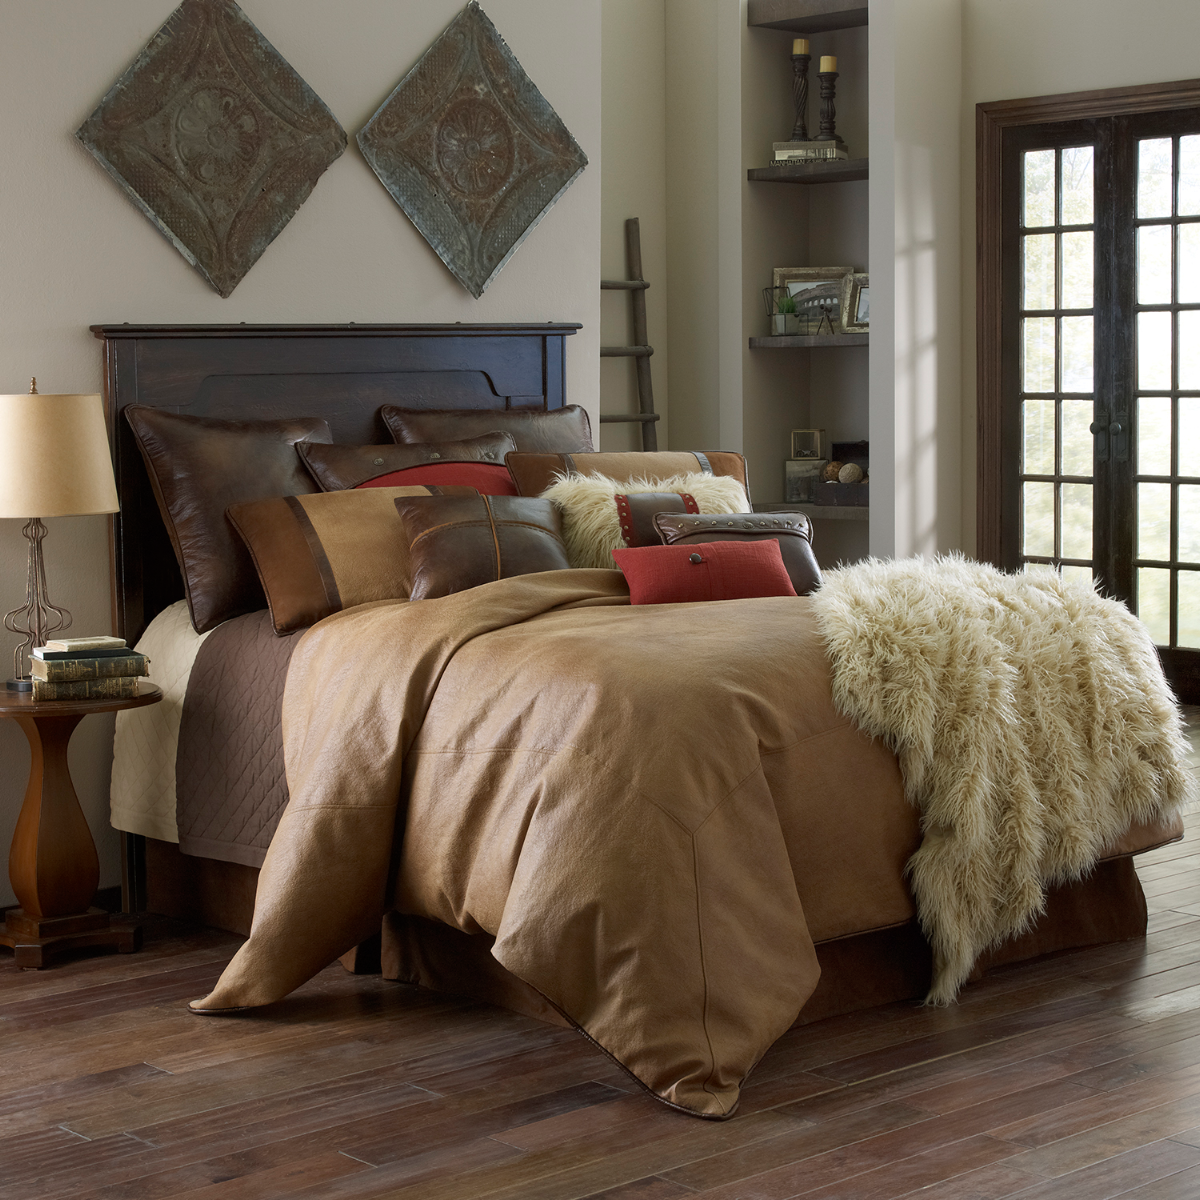 NS4090 Brighton Comforter Set